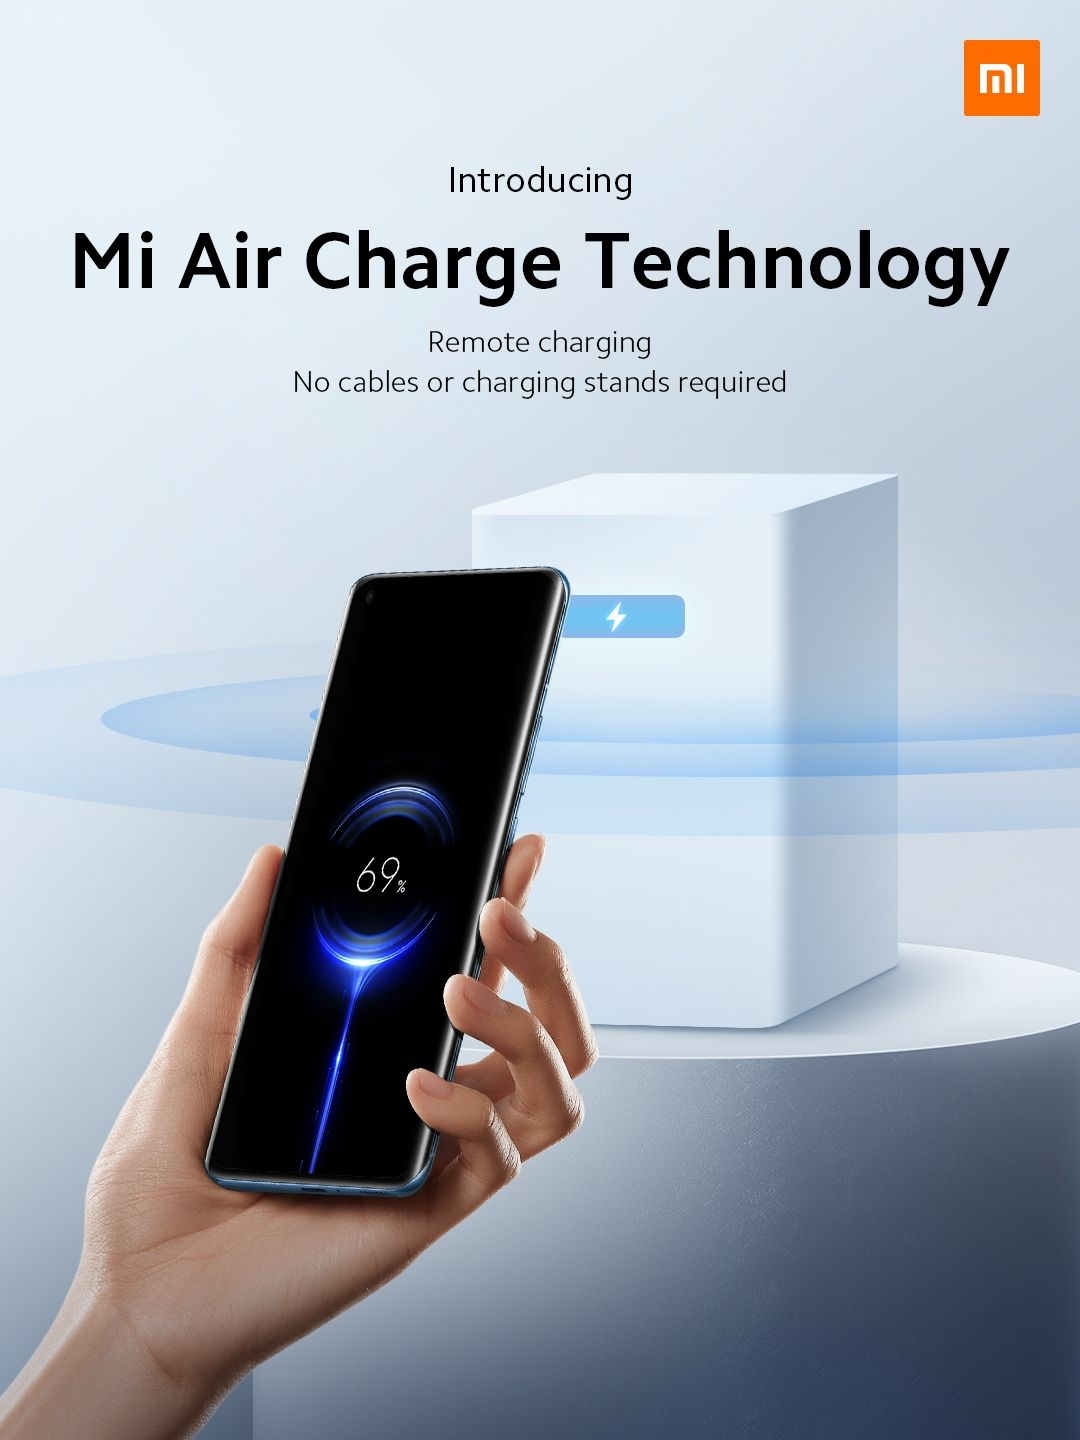 Xiaomi introduced Mi Air Charge Technology